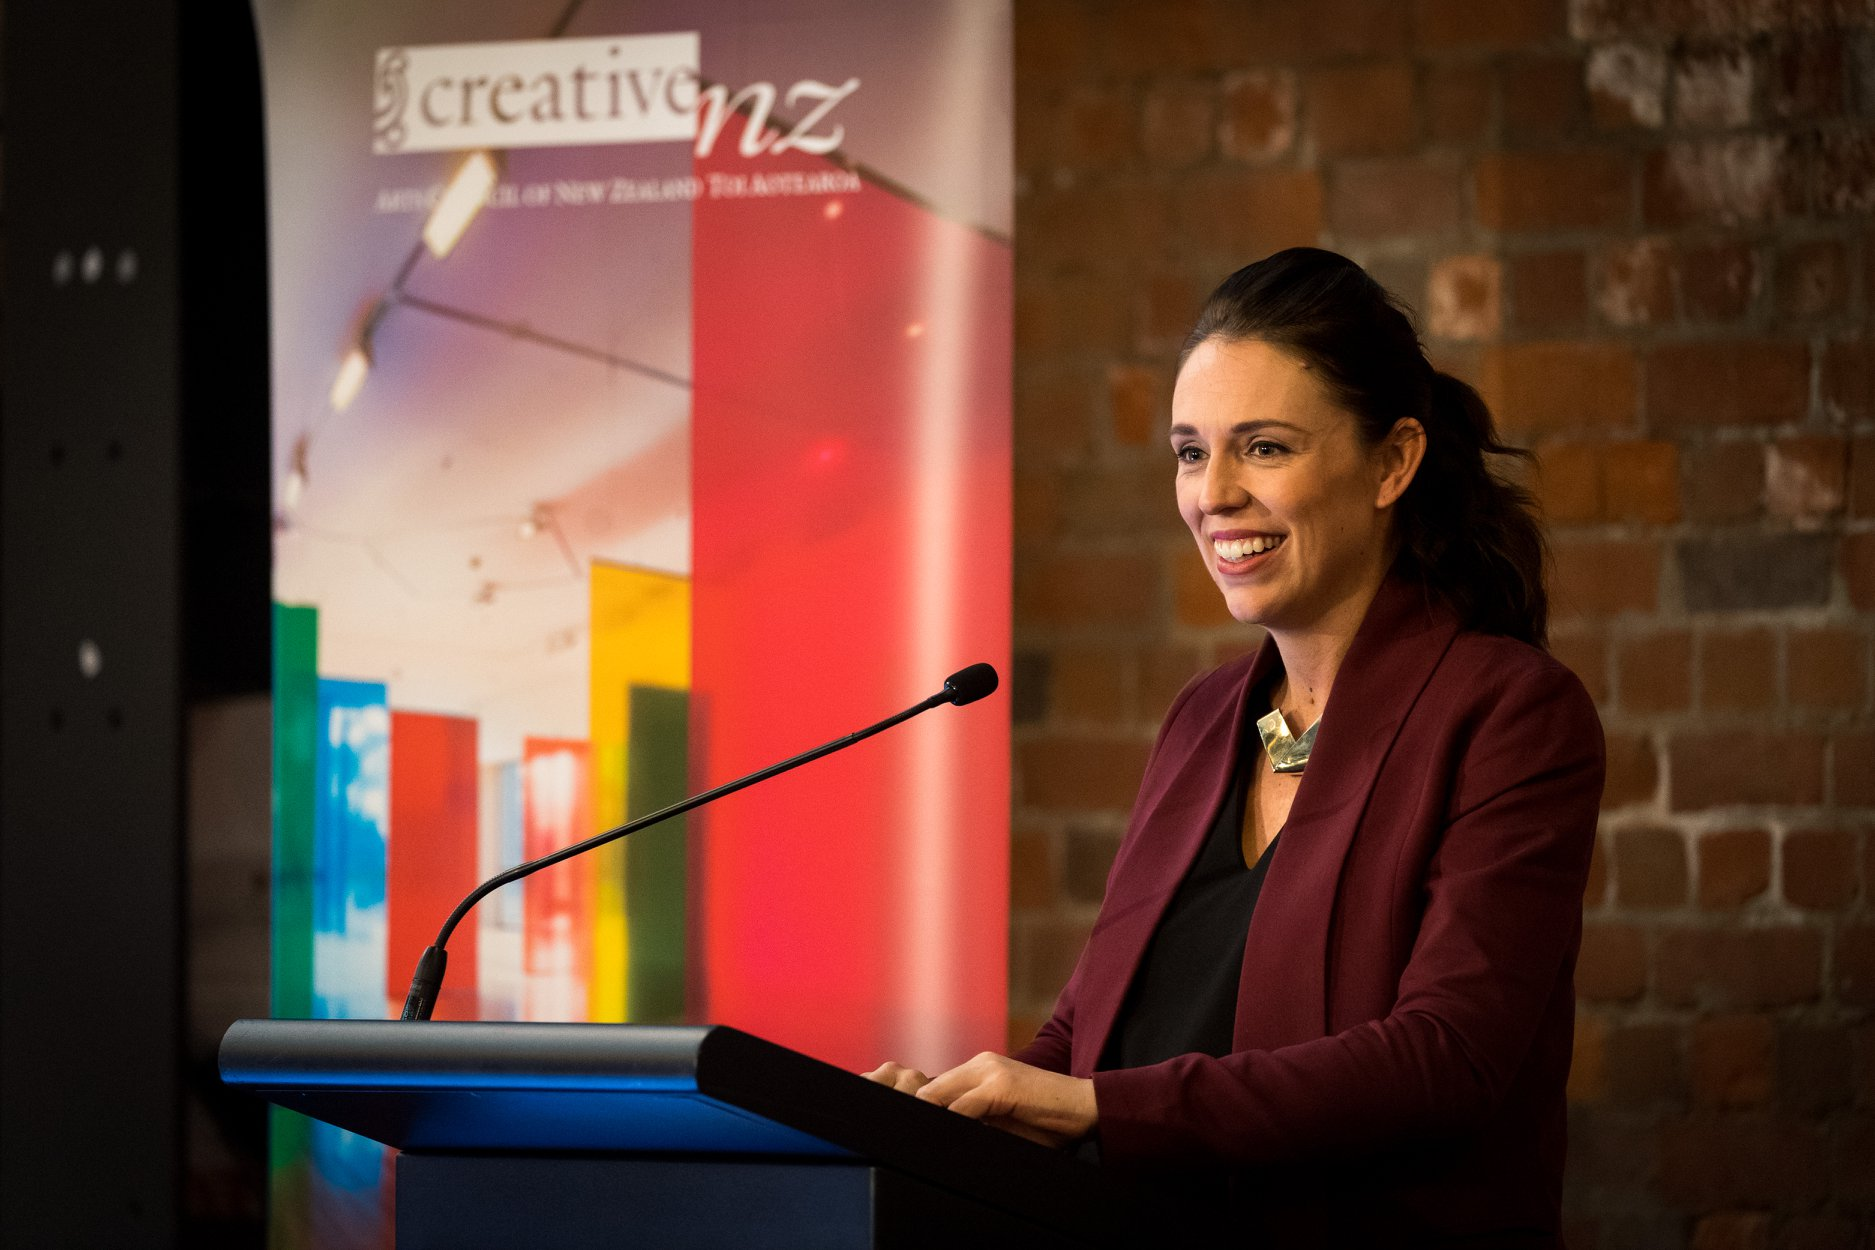 Prime Minister Jacinda Ardenr speaks at the Creative New Zealand conference, Nui Te Korero